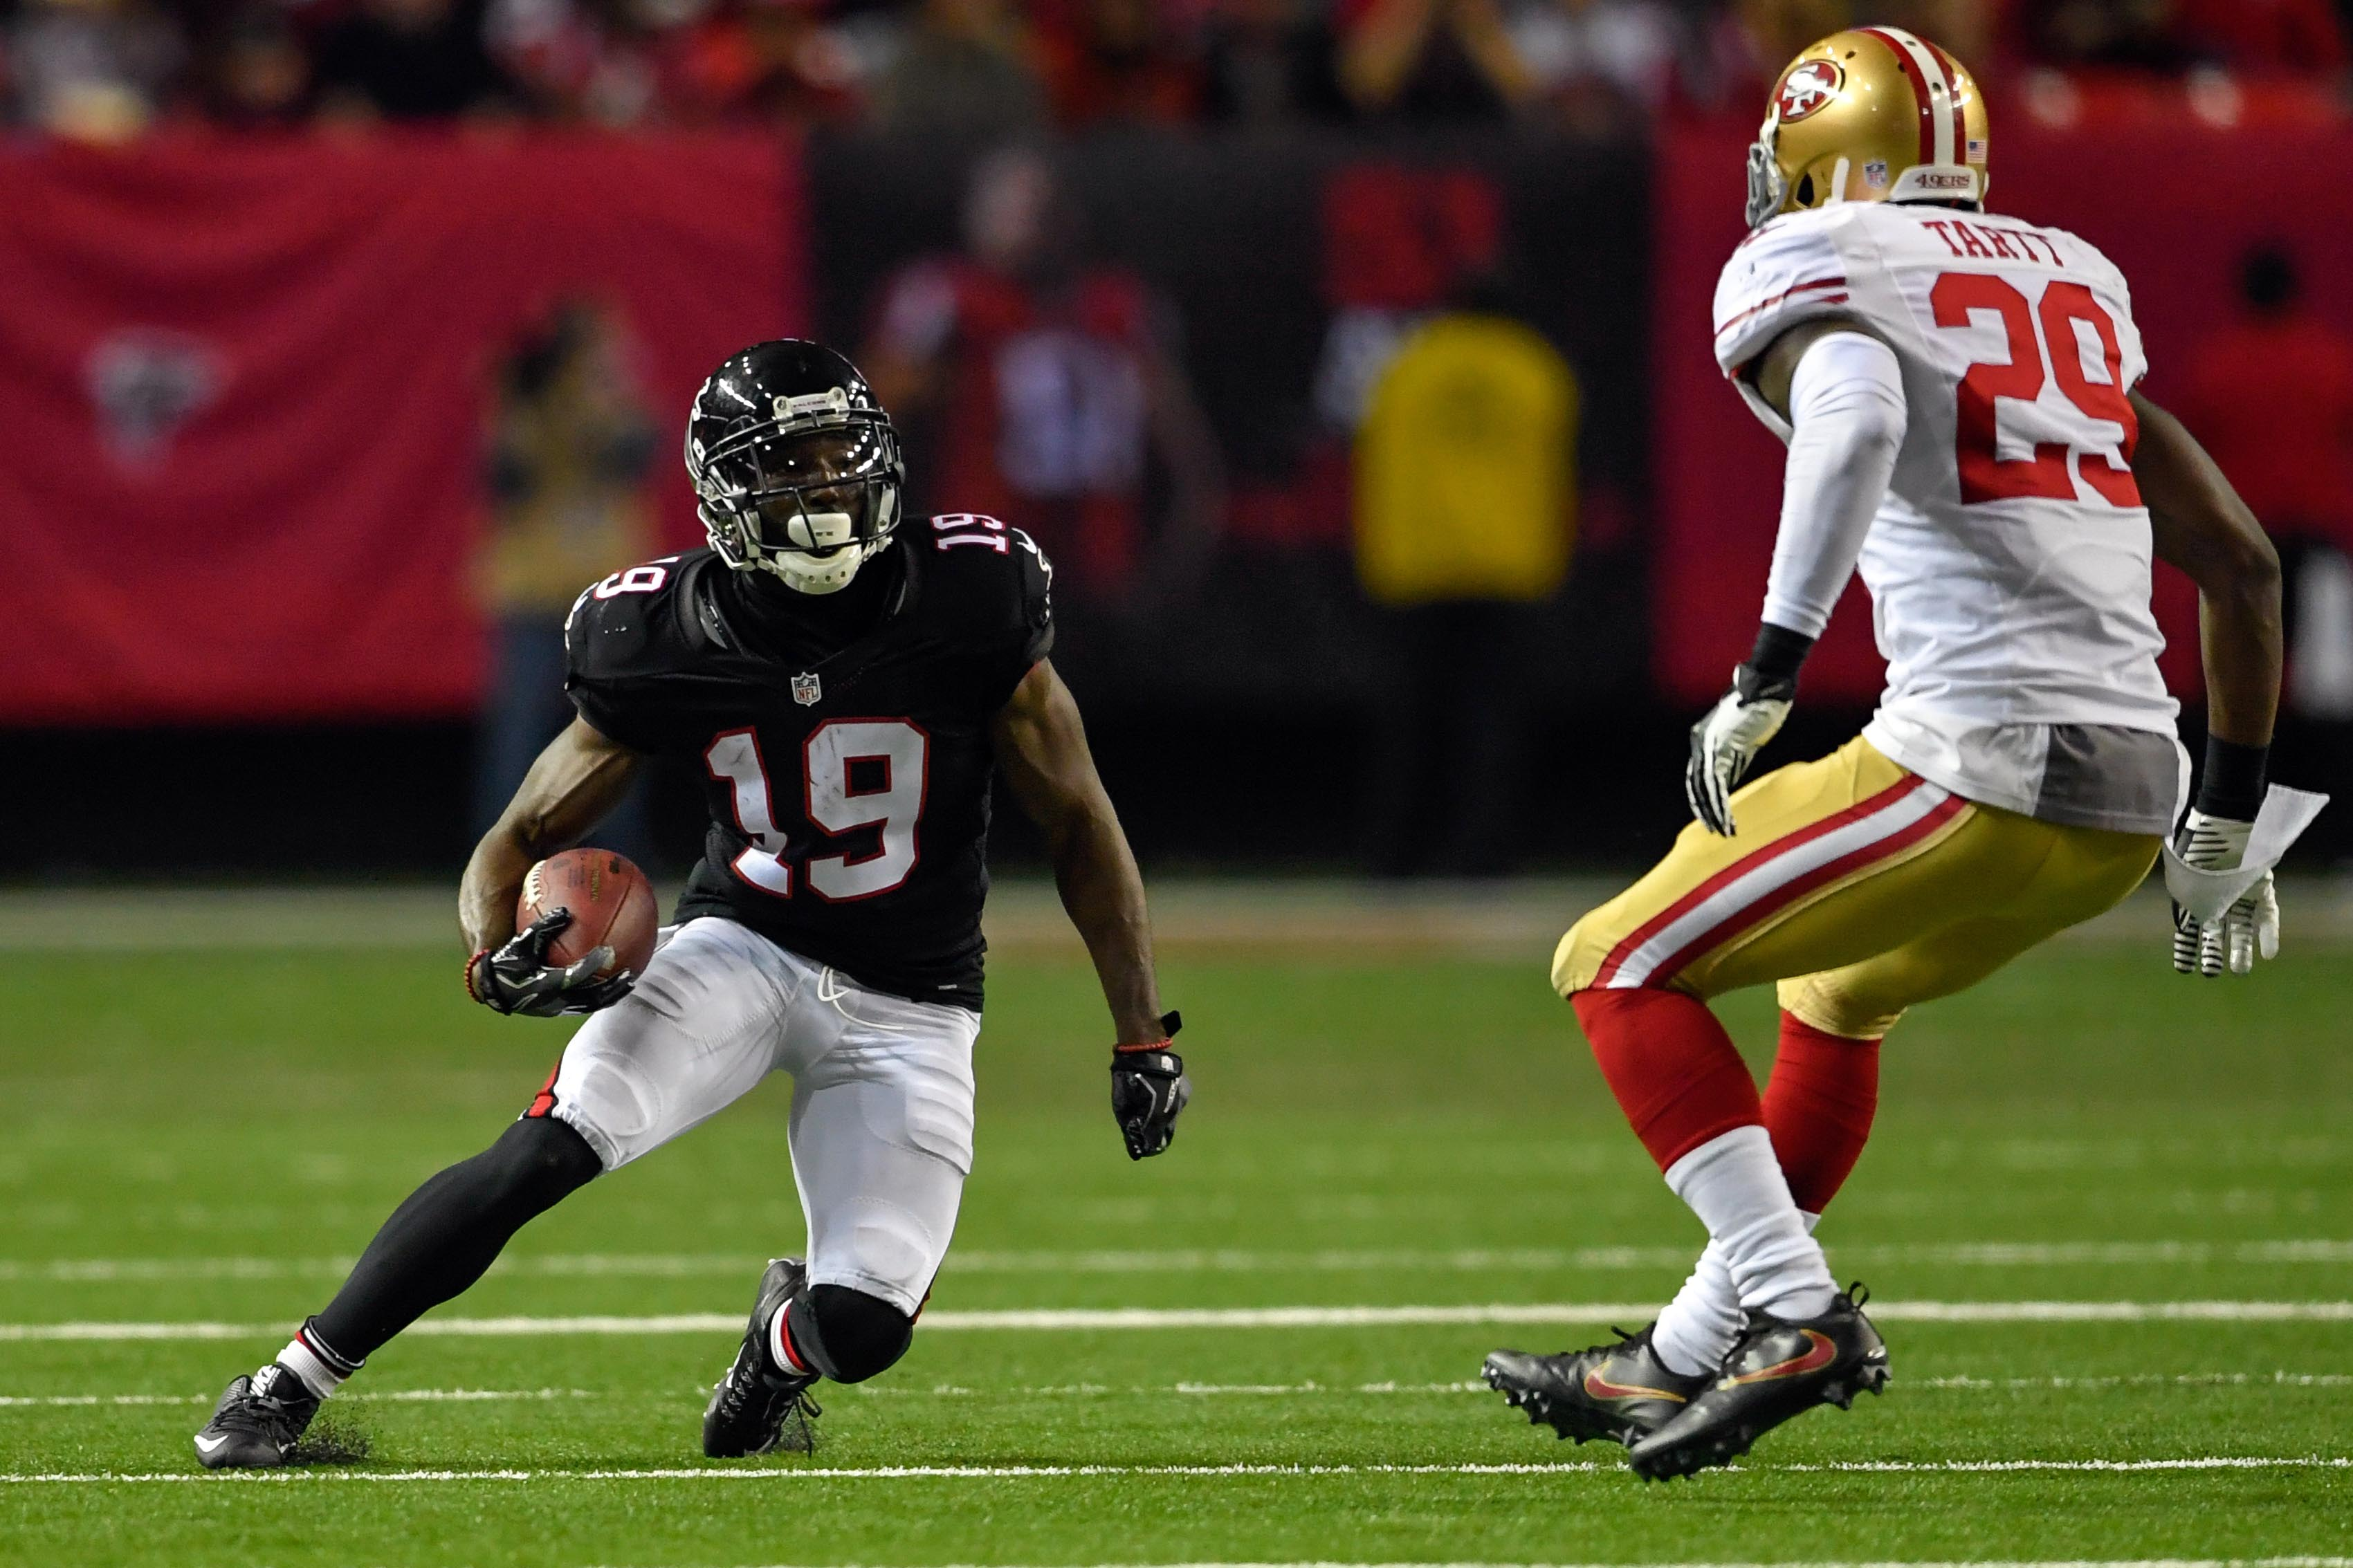 9755812-nfl-san-francisco-49ers-at-atlanta-falcons